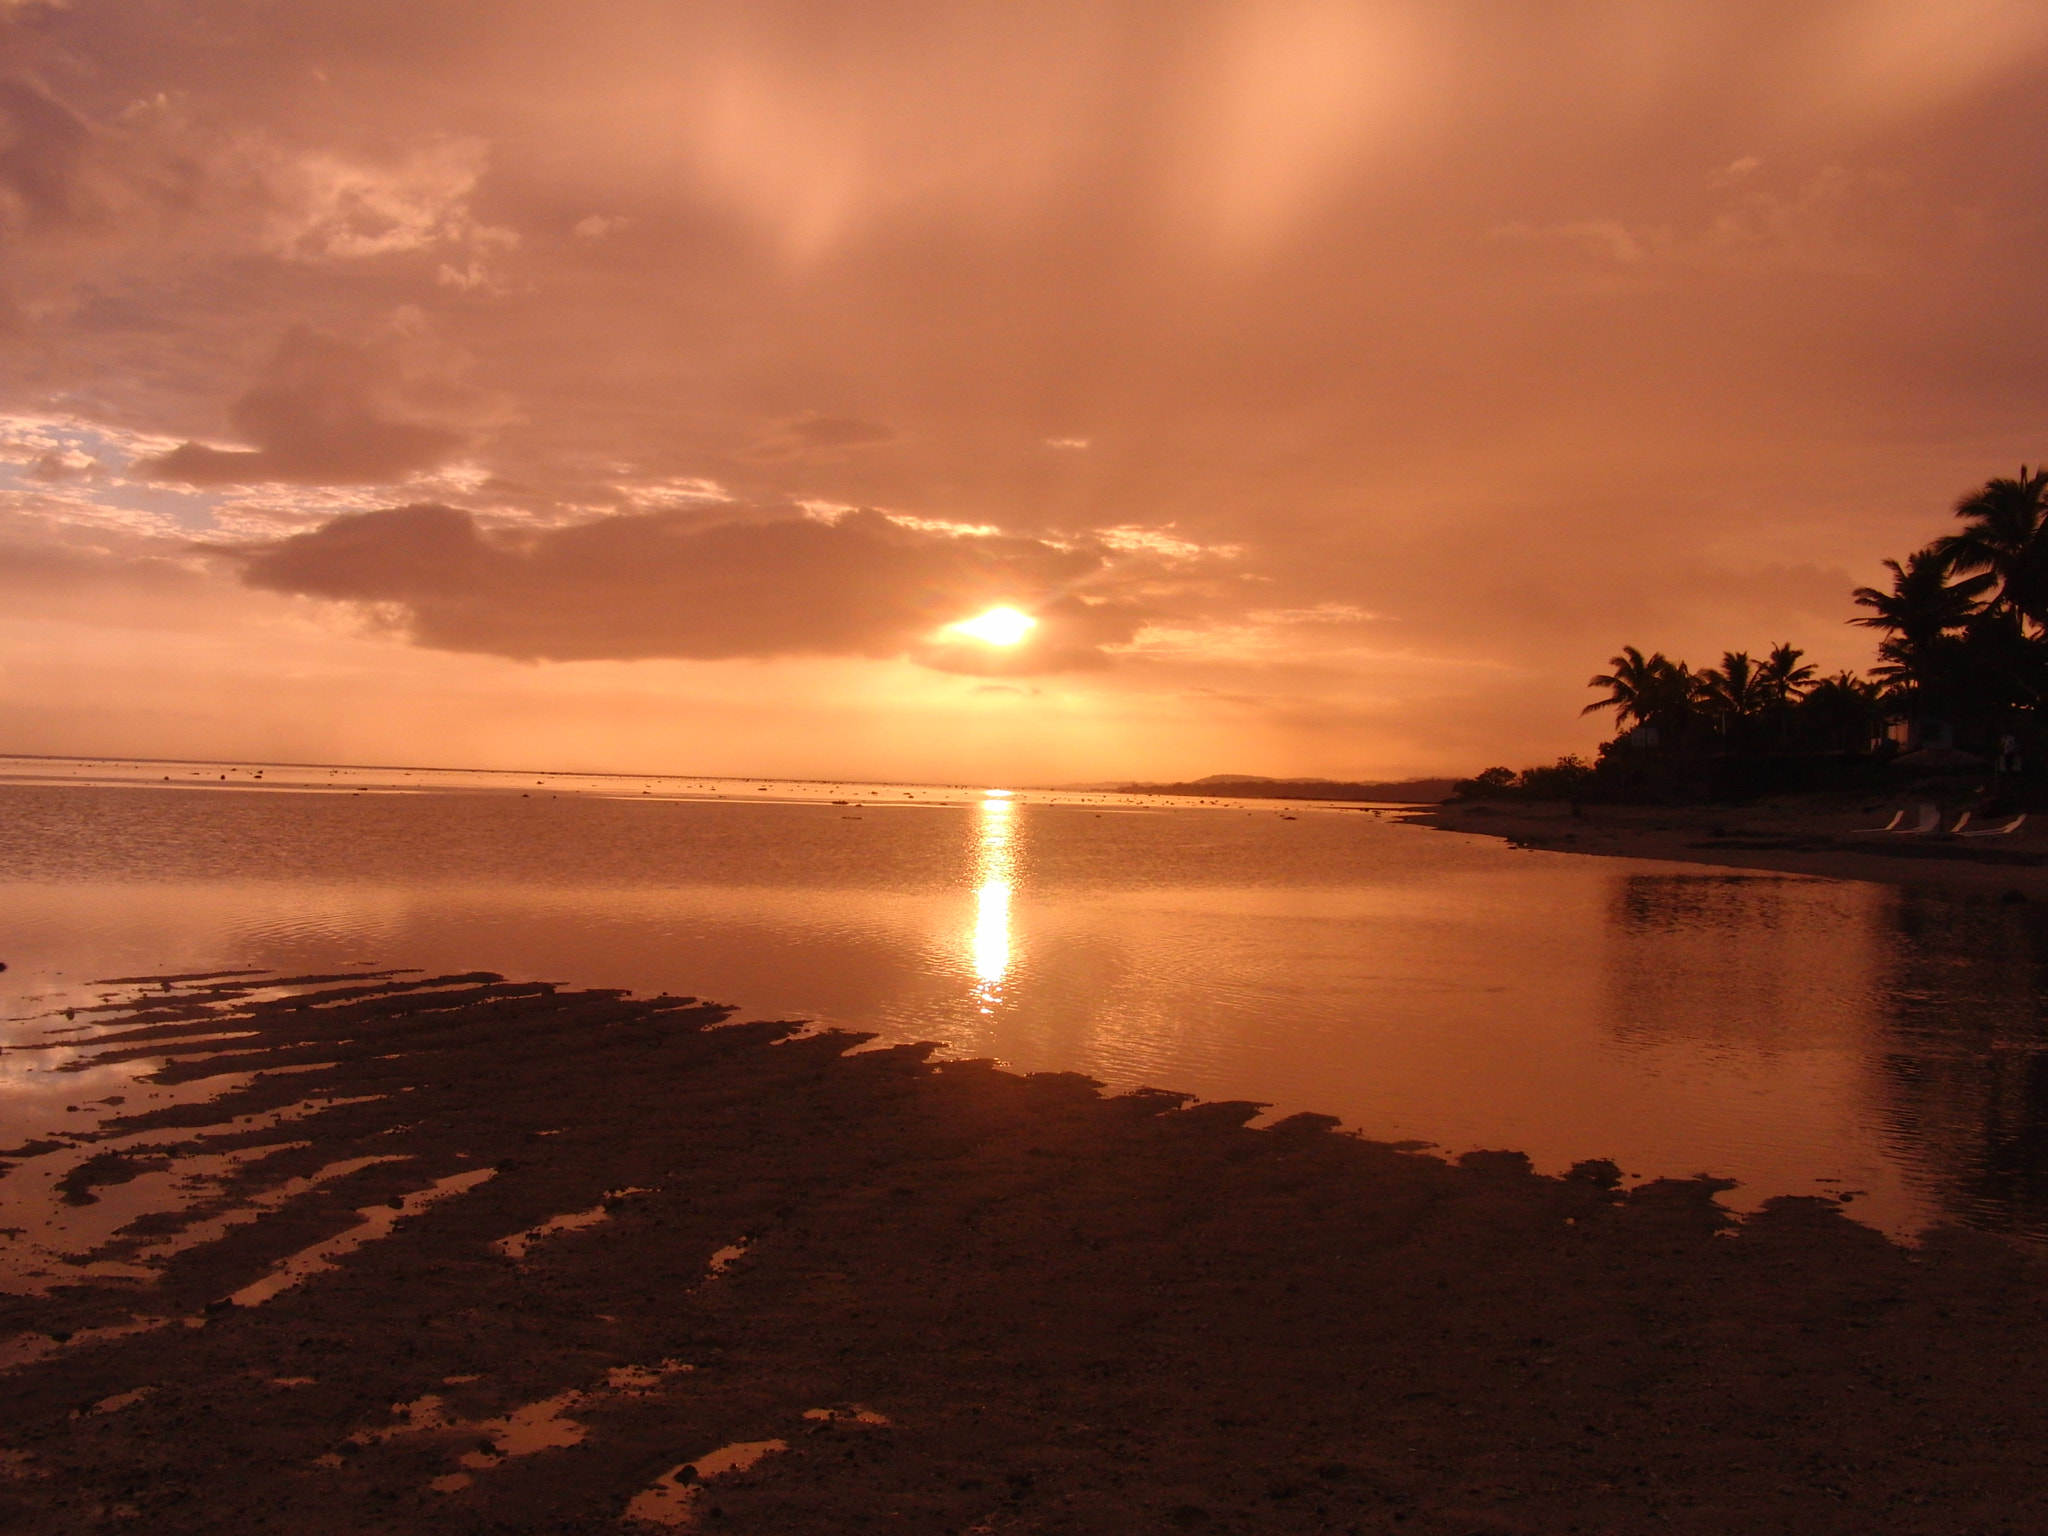 Photograph Sunset in Fiji by Yury Petrov on 500px